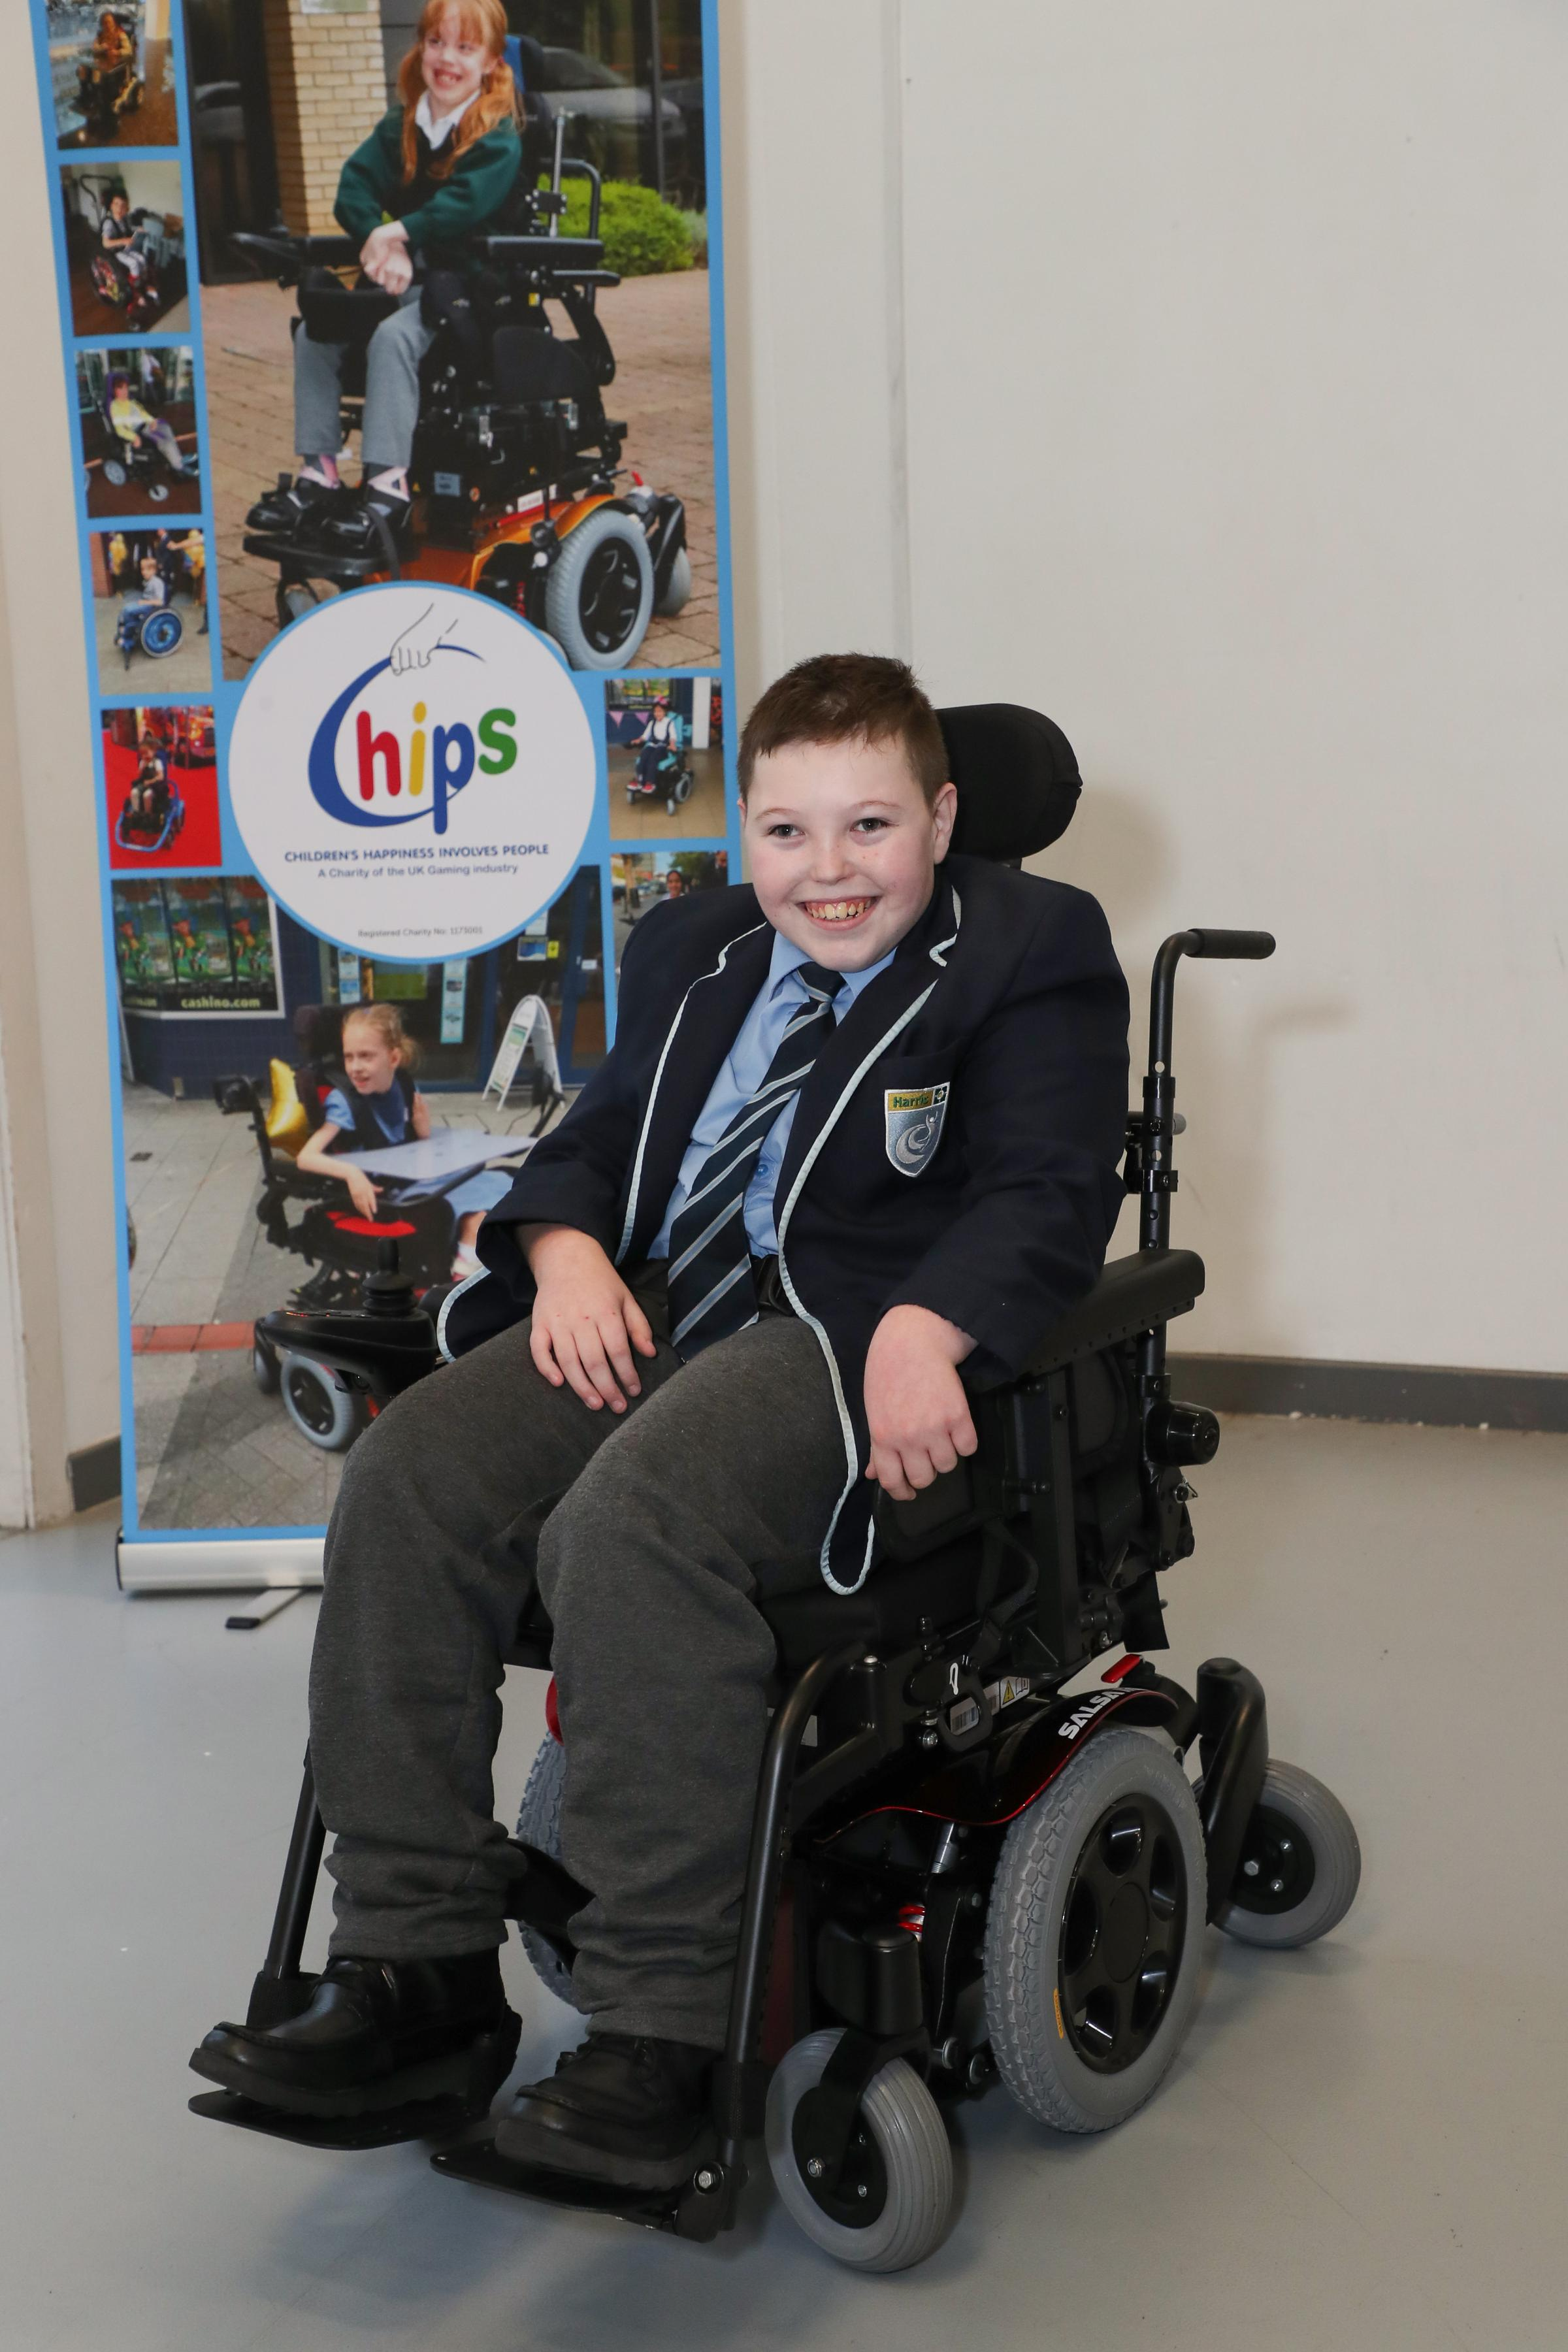 Grays 14-year-old presented with powered-wheelchair to boost school and home life